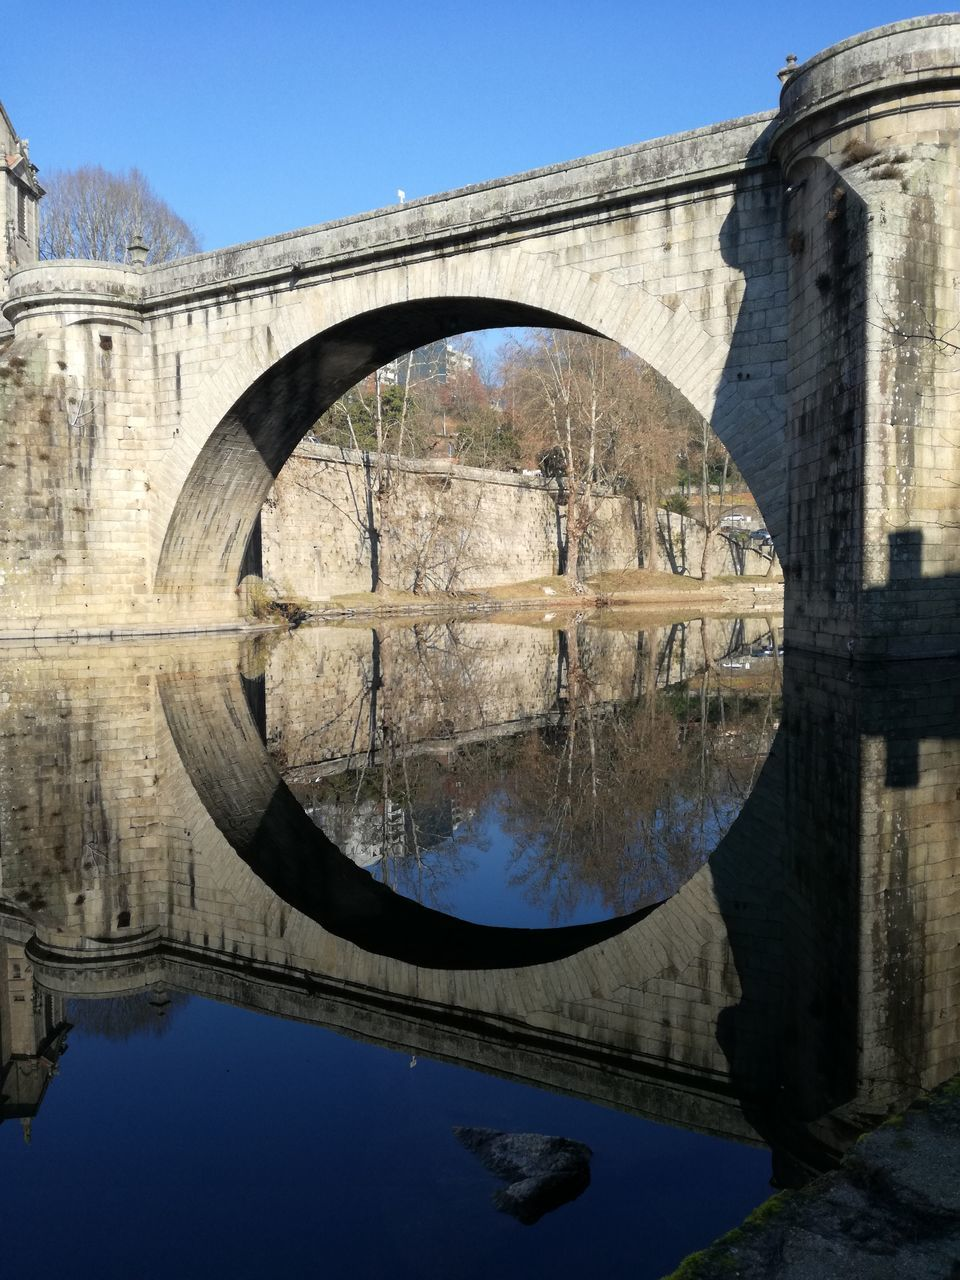 reflection, arch, architecture, water, built structure, day, bridge - man made structure, sky, clear sky, no people, outdoors, tree, nature